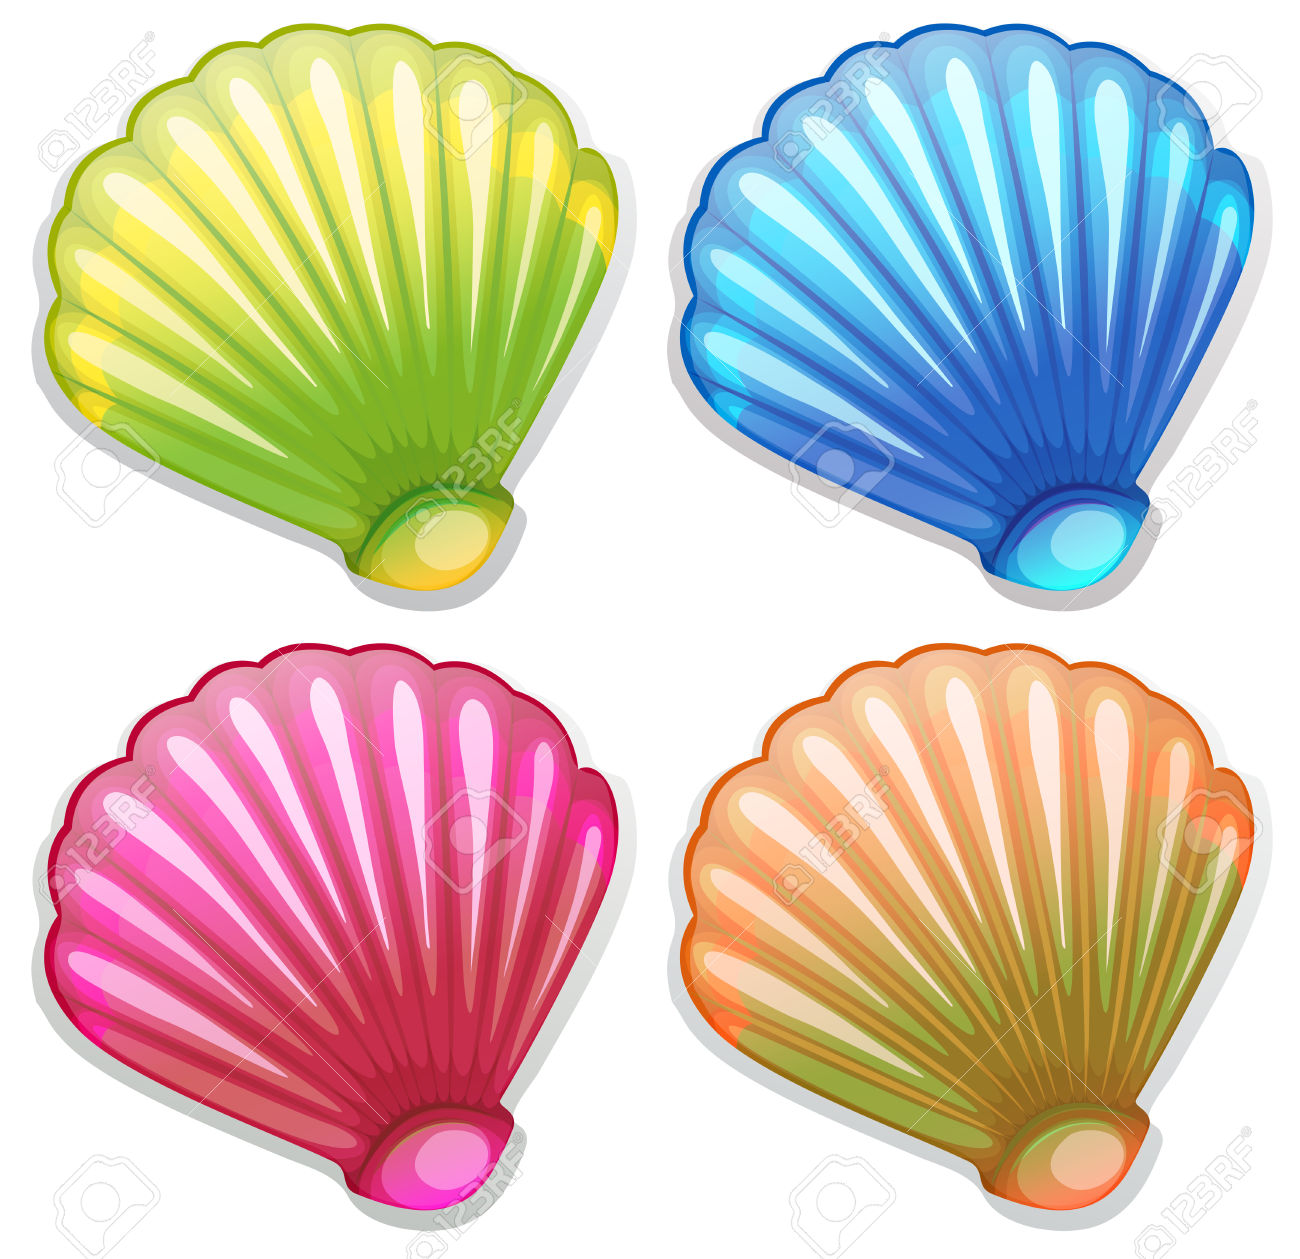 Seashell clip art sea shells